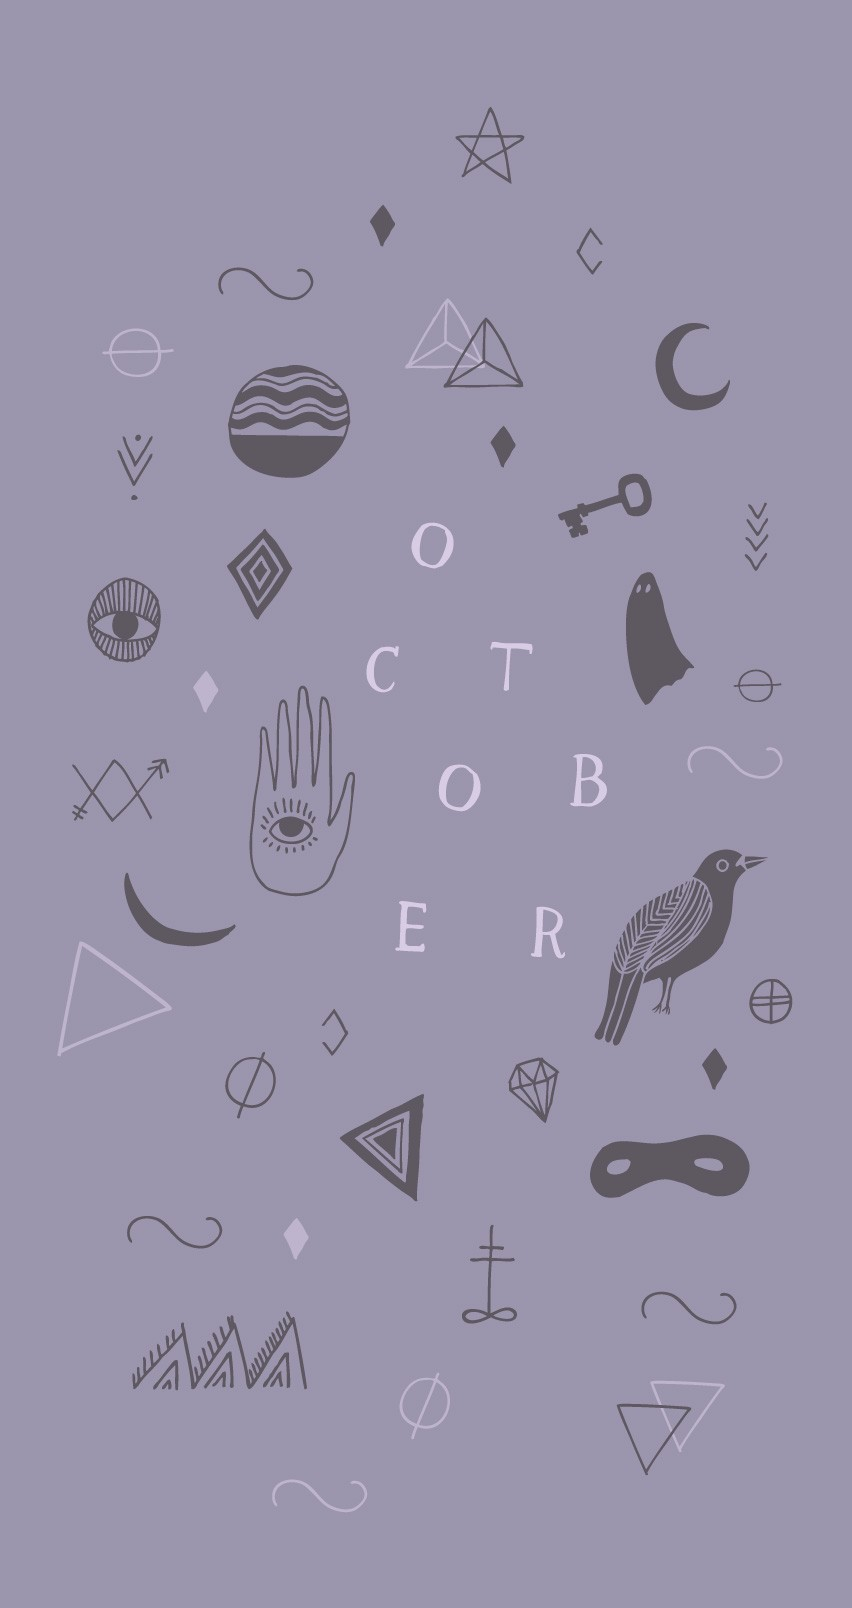 October Aesthetic Wallpaper Kolpaper Awesome Free Hd Wallpapers